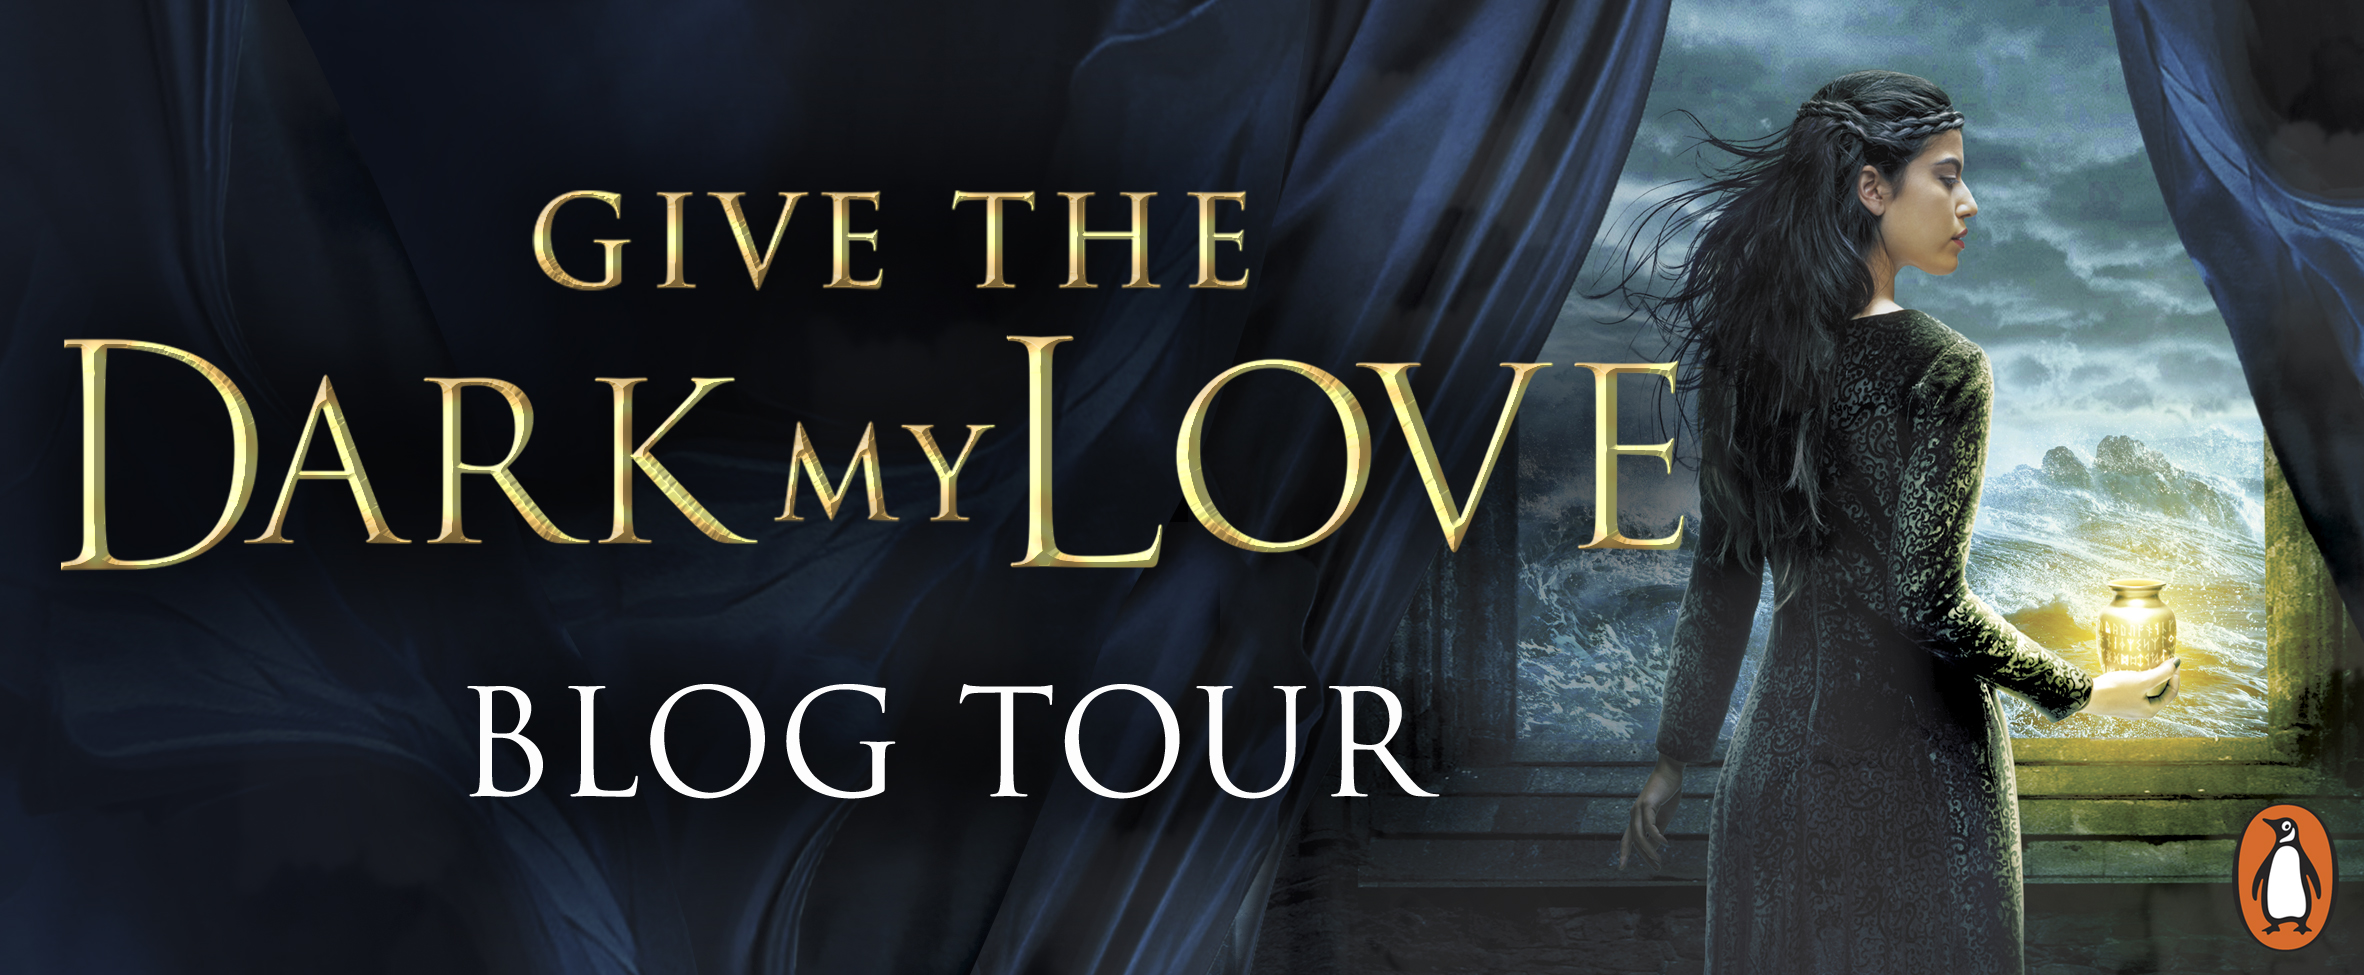 BLOG TOUR: Give the Dark My Love (Give the Dark My Love #1) by Beth Revis